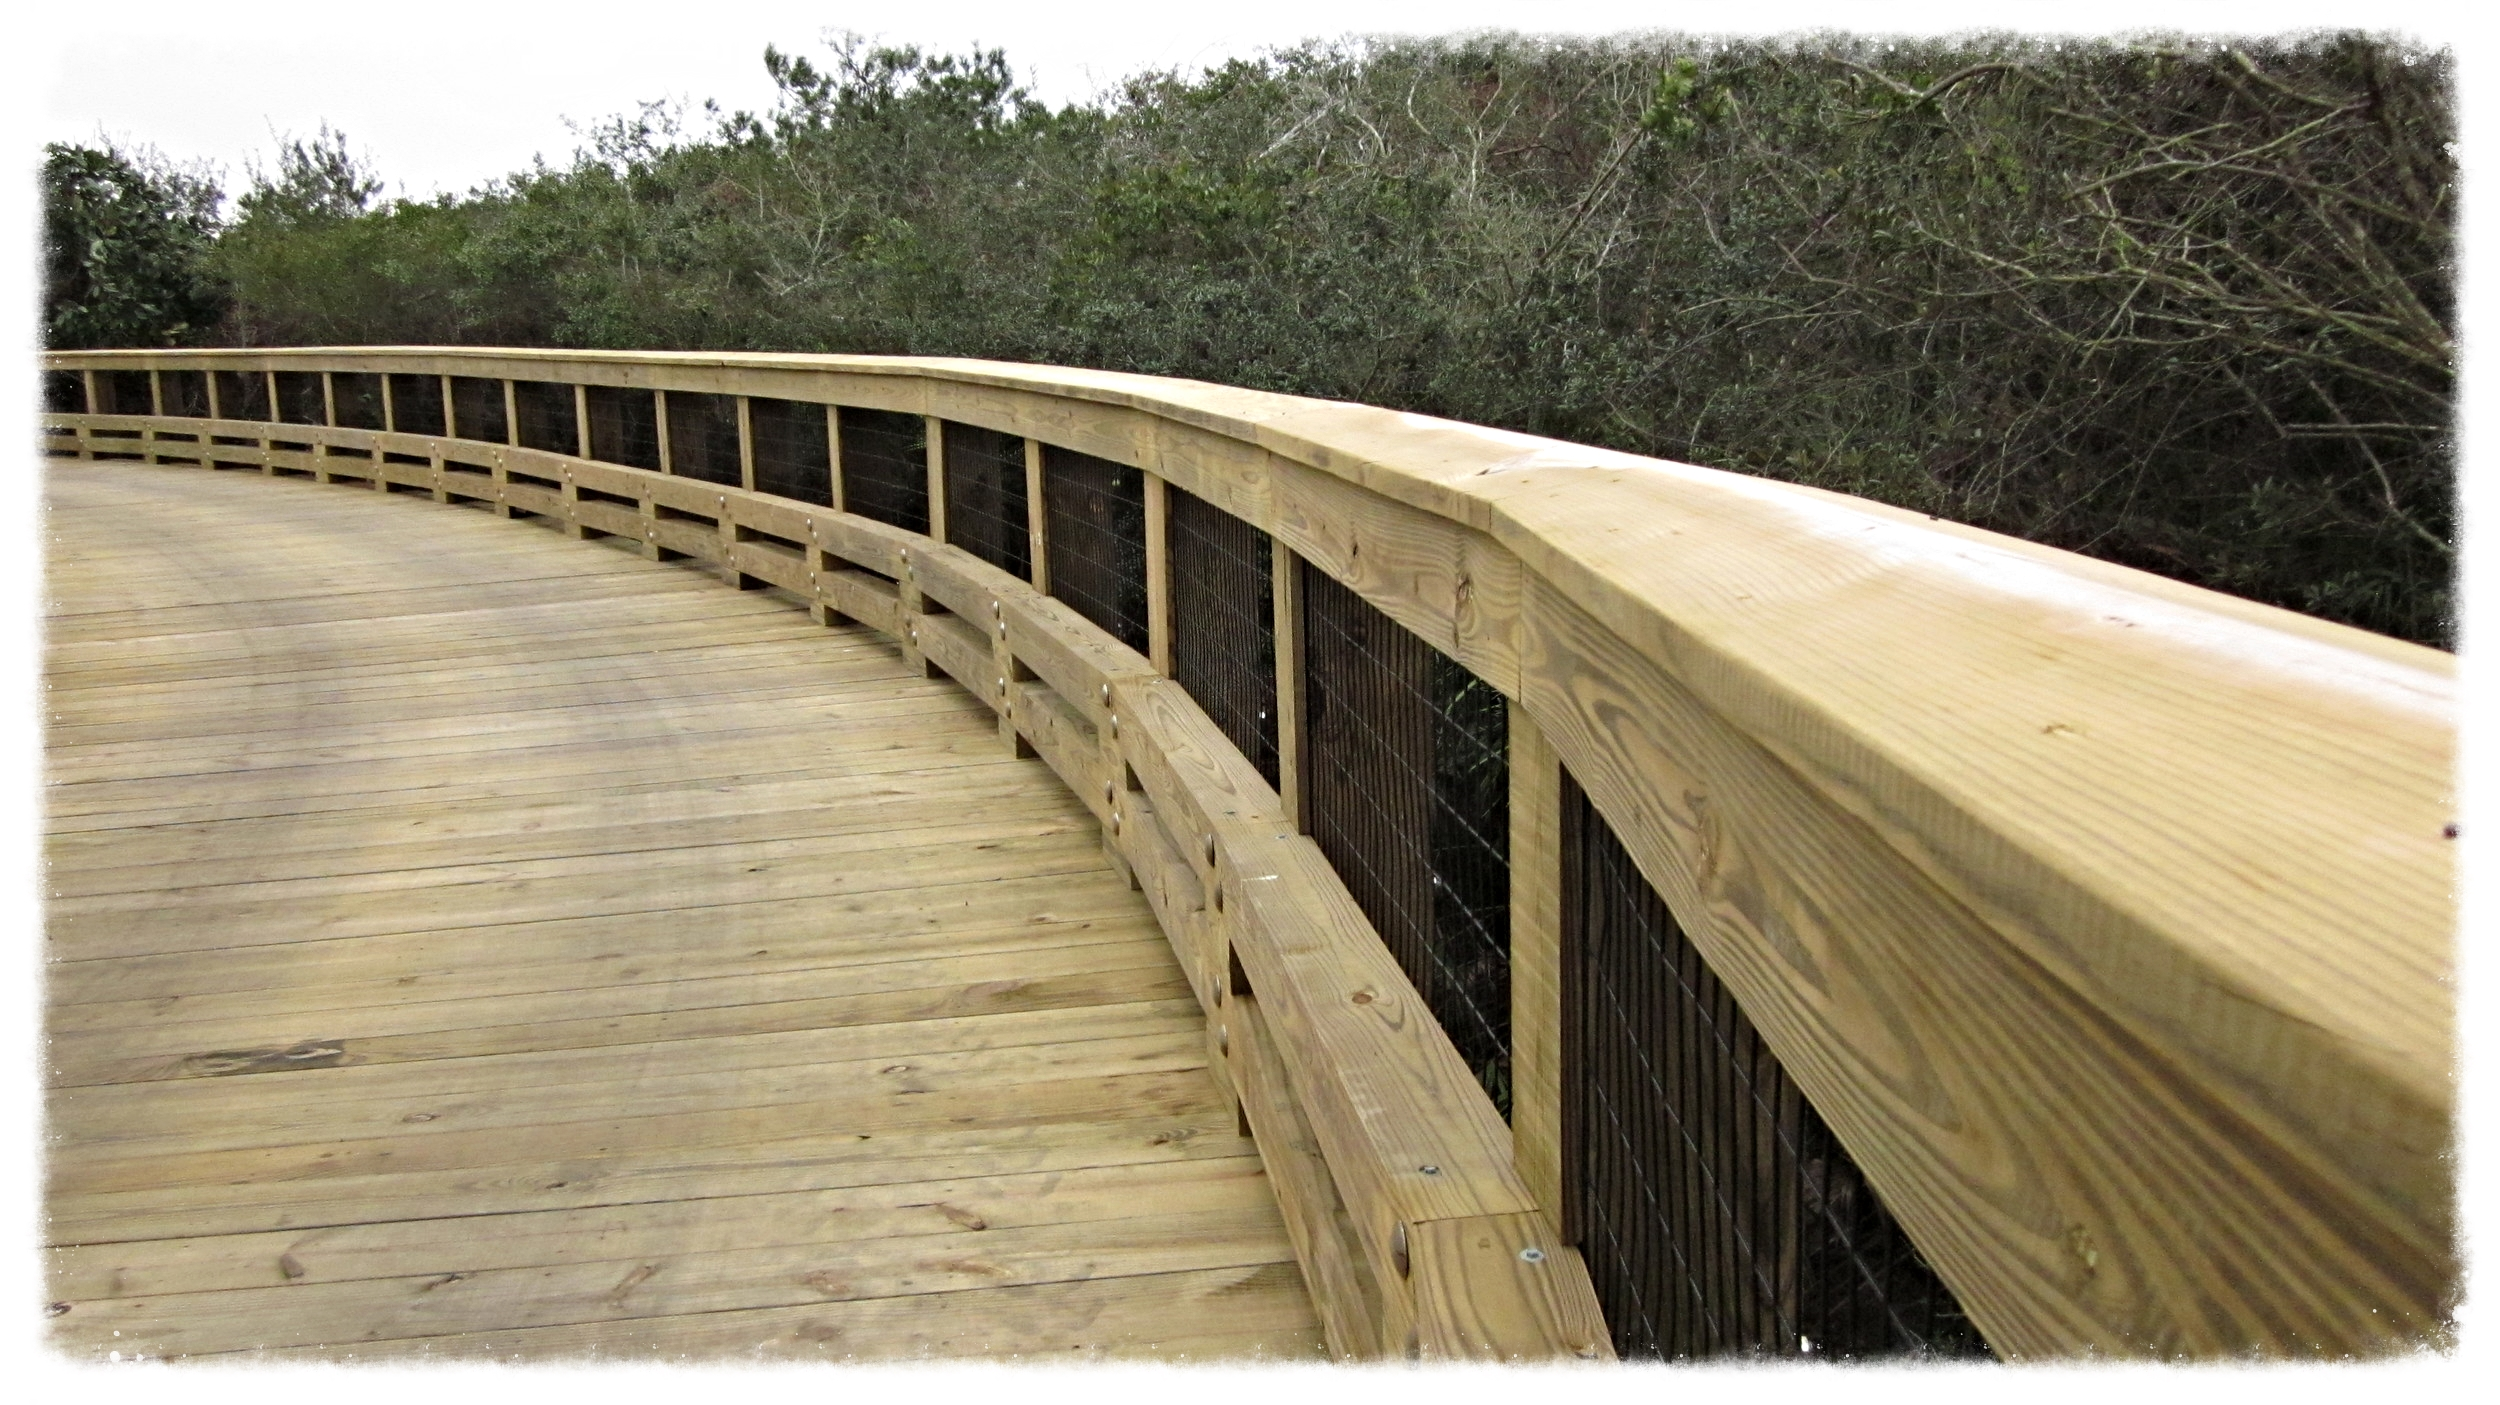 Beach Access Boardwalk Builder